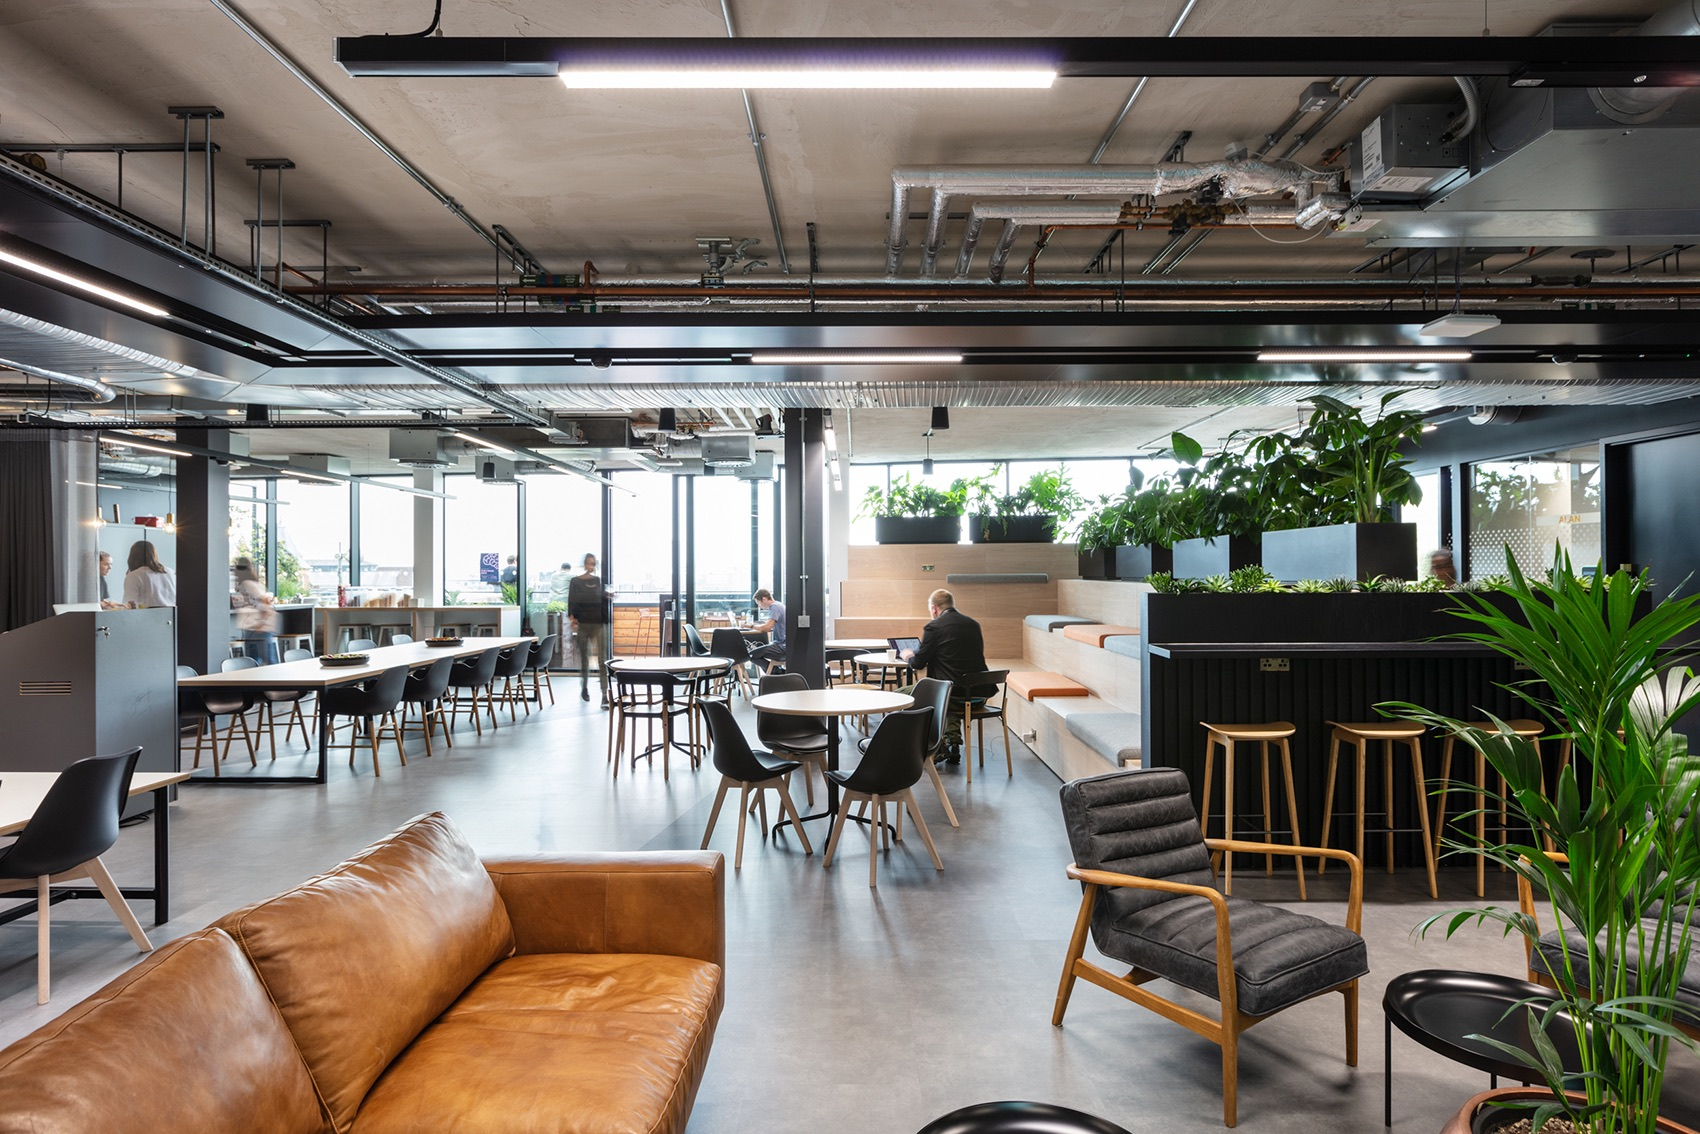 A Look Inside Elements Talent Consultancy's Biophilic London office